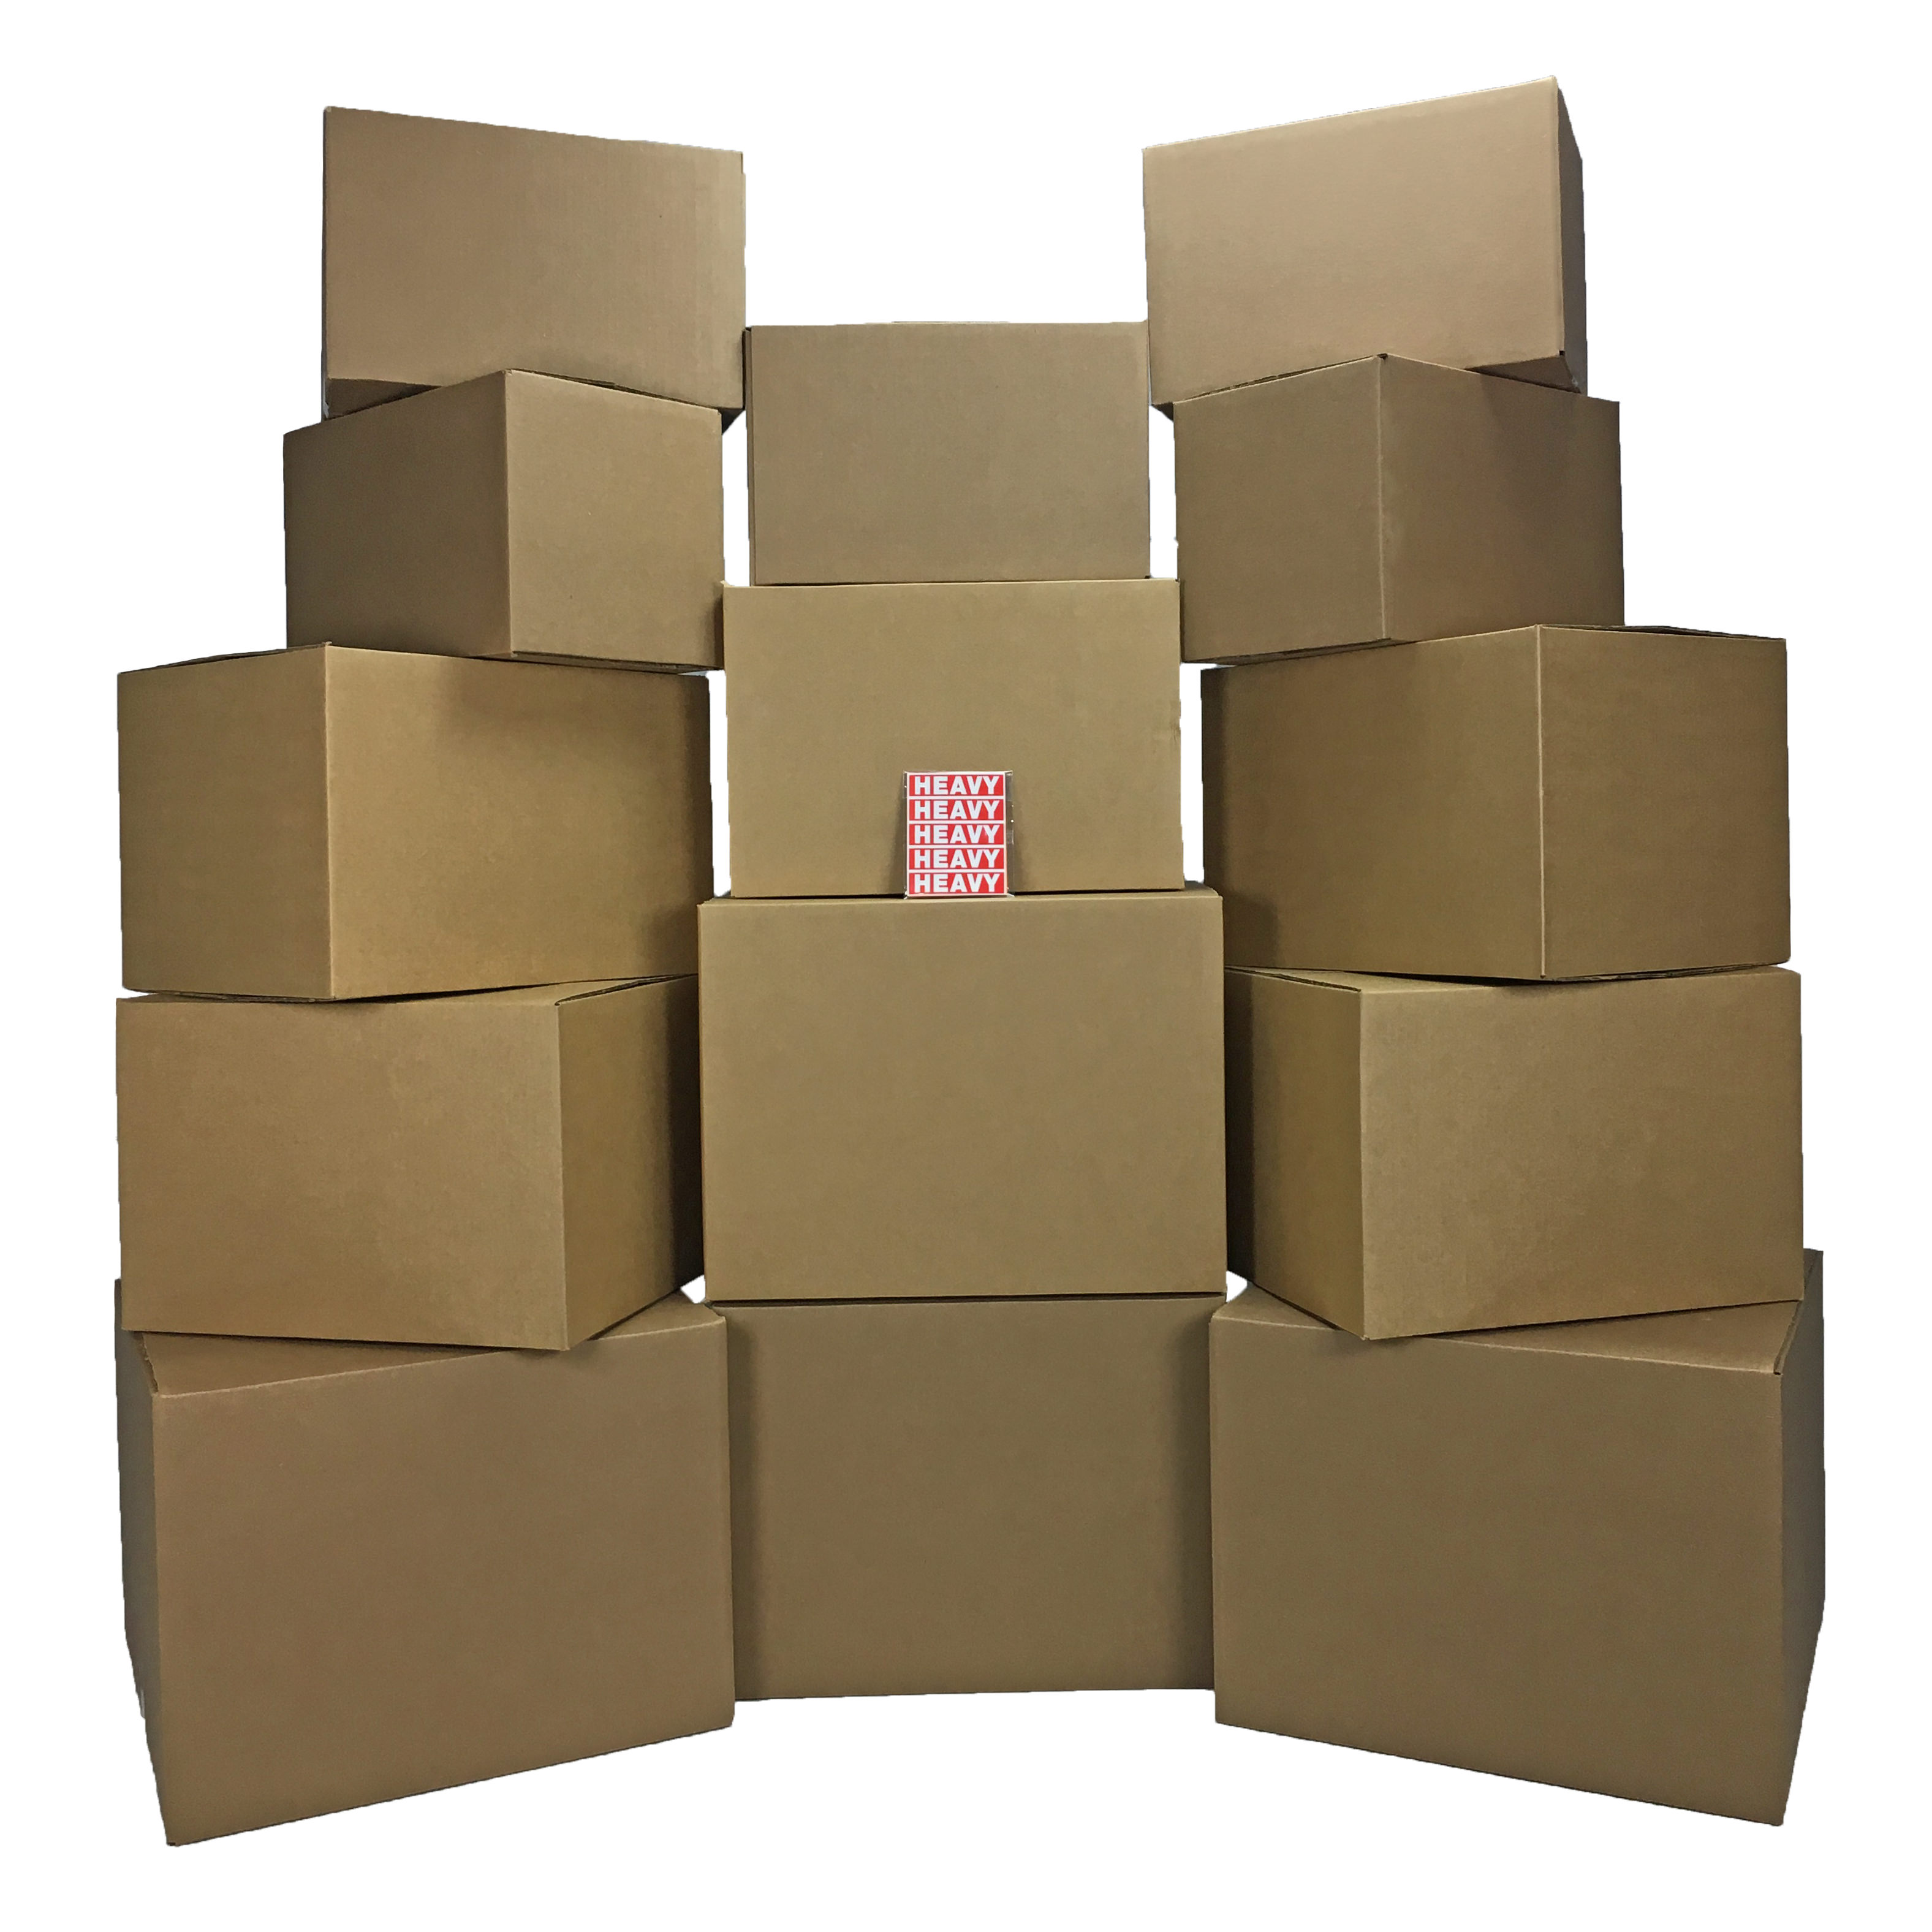 ValueSupplies Moving Kit #2